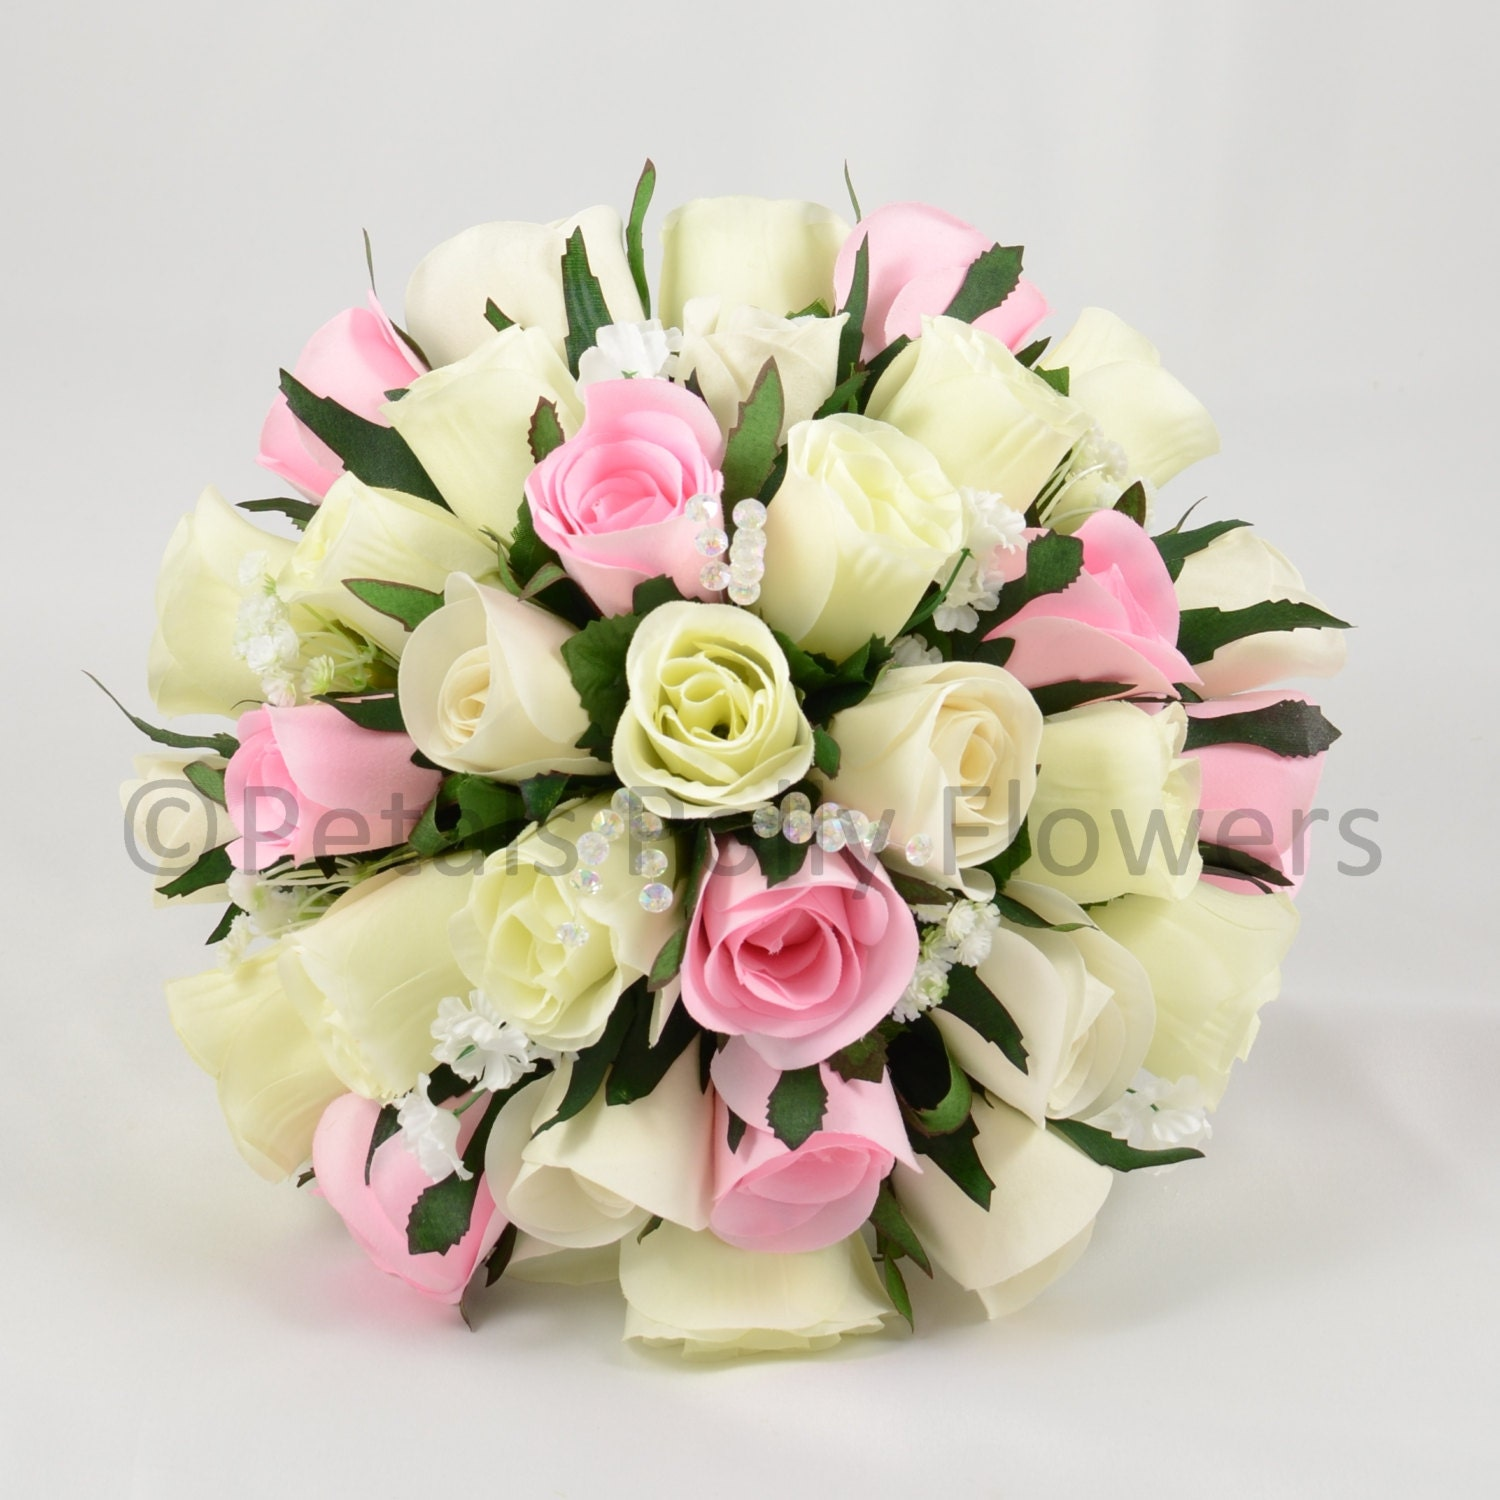 Artificial Wedding Flowers Baby Pink  Ivory Rose Brides Bouquet Posy